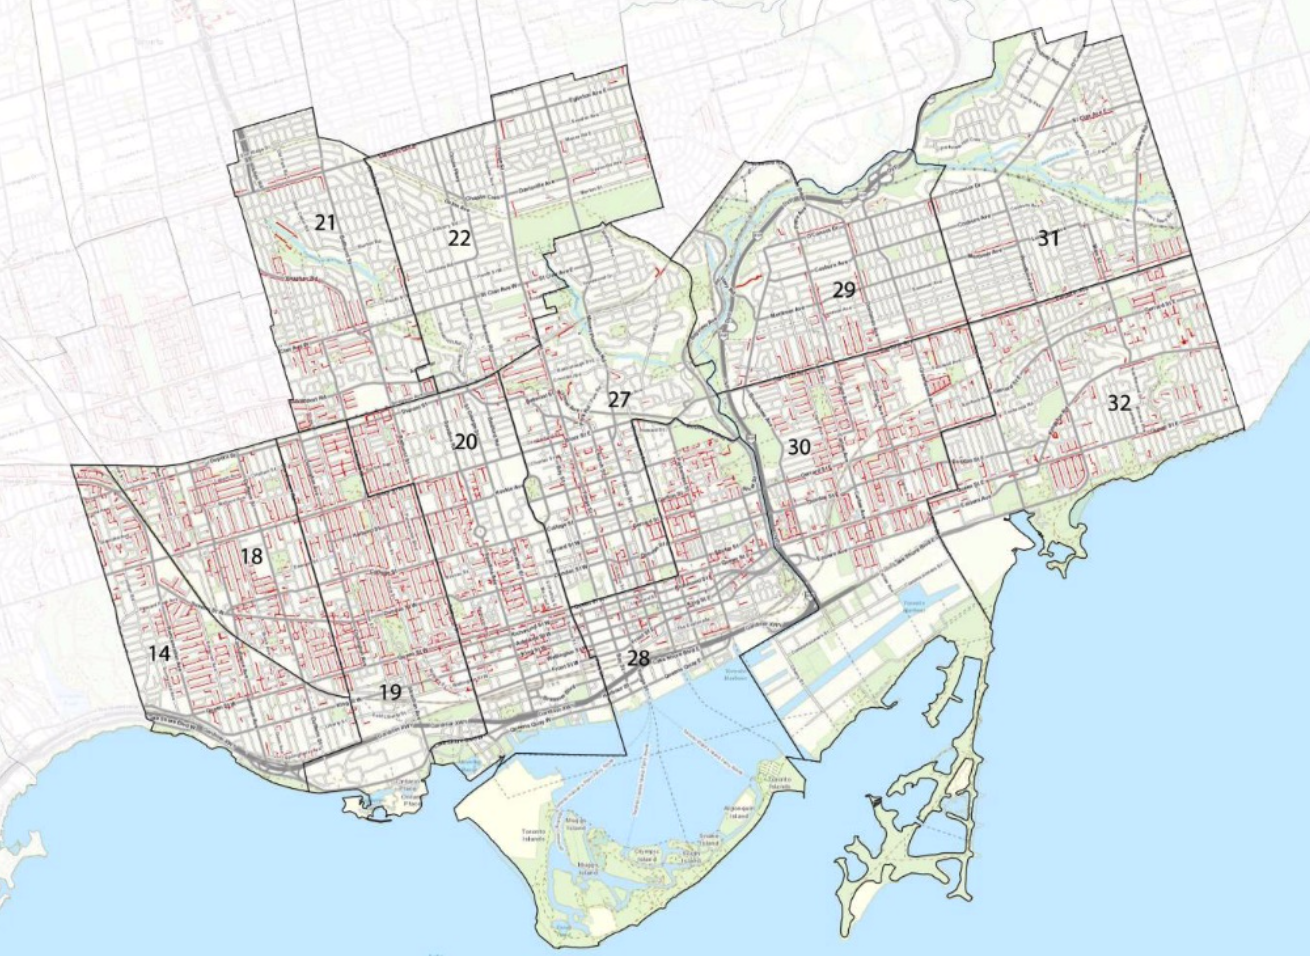 Photo from Toronto City Planning 'Changing Lanes' Presentation, May 2, 2018